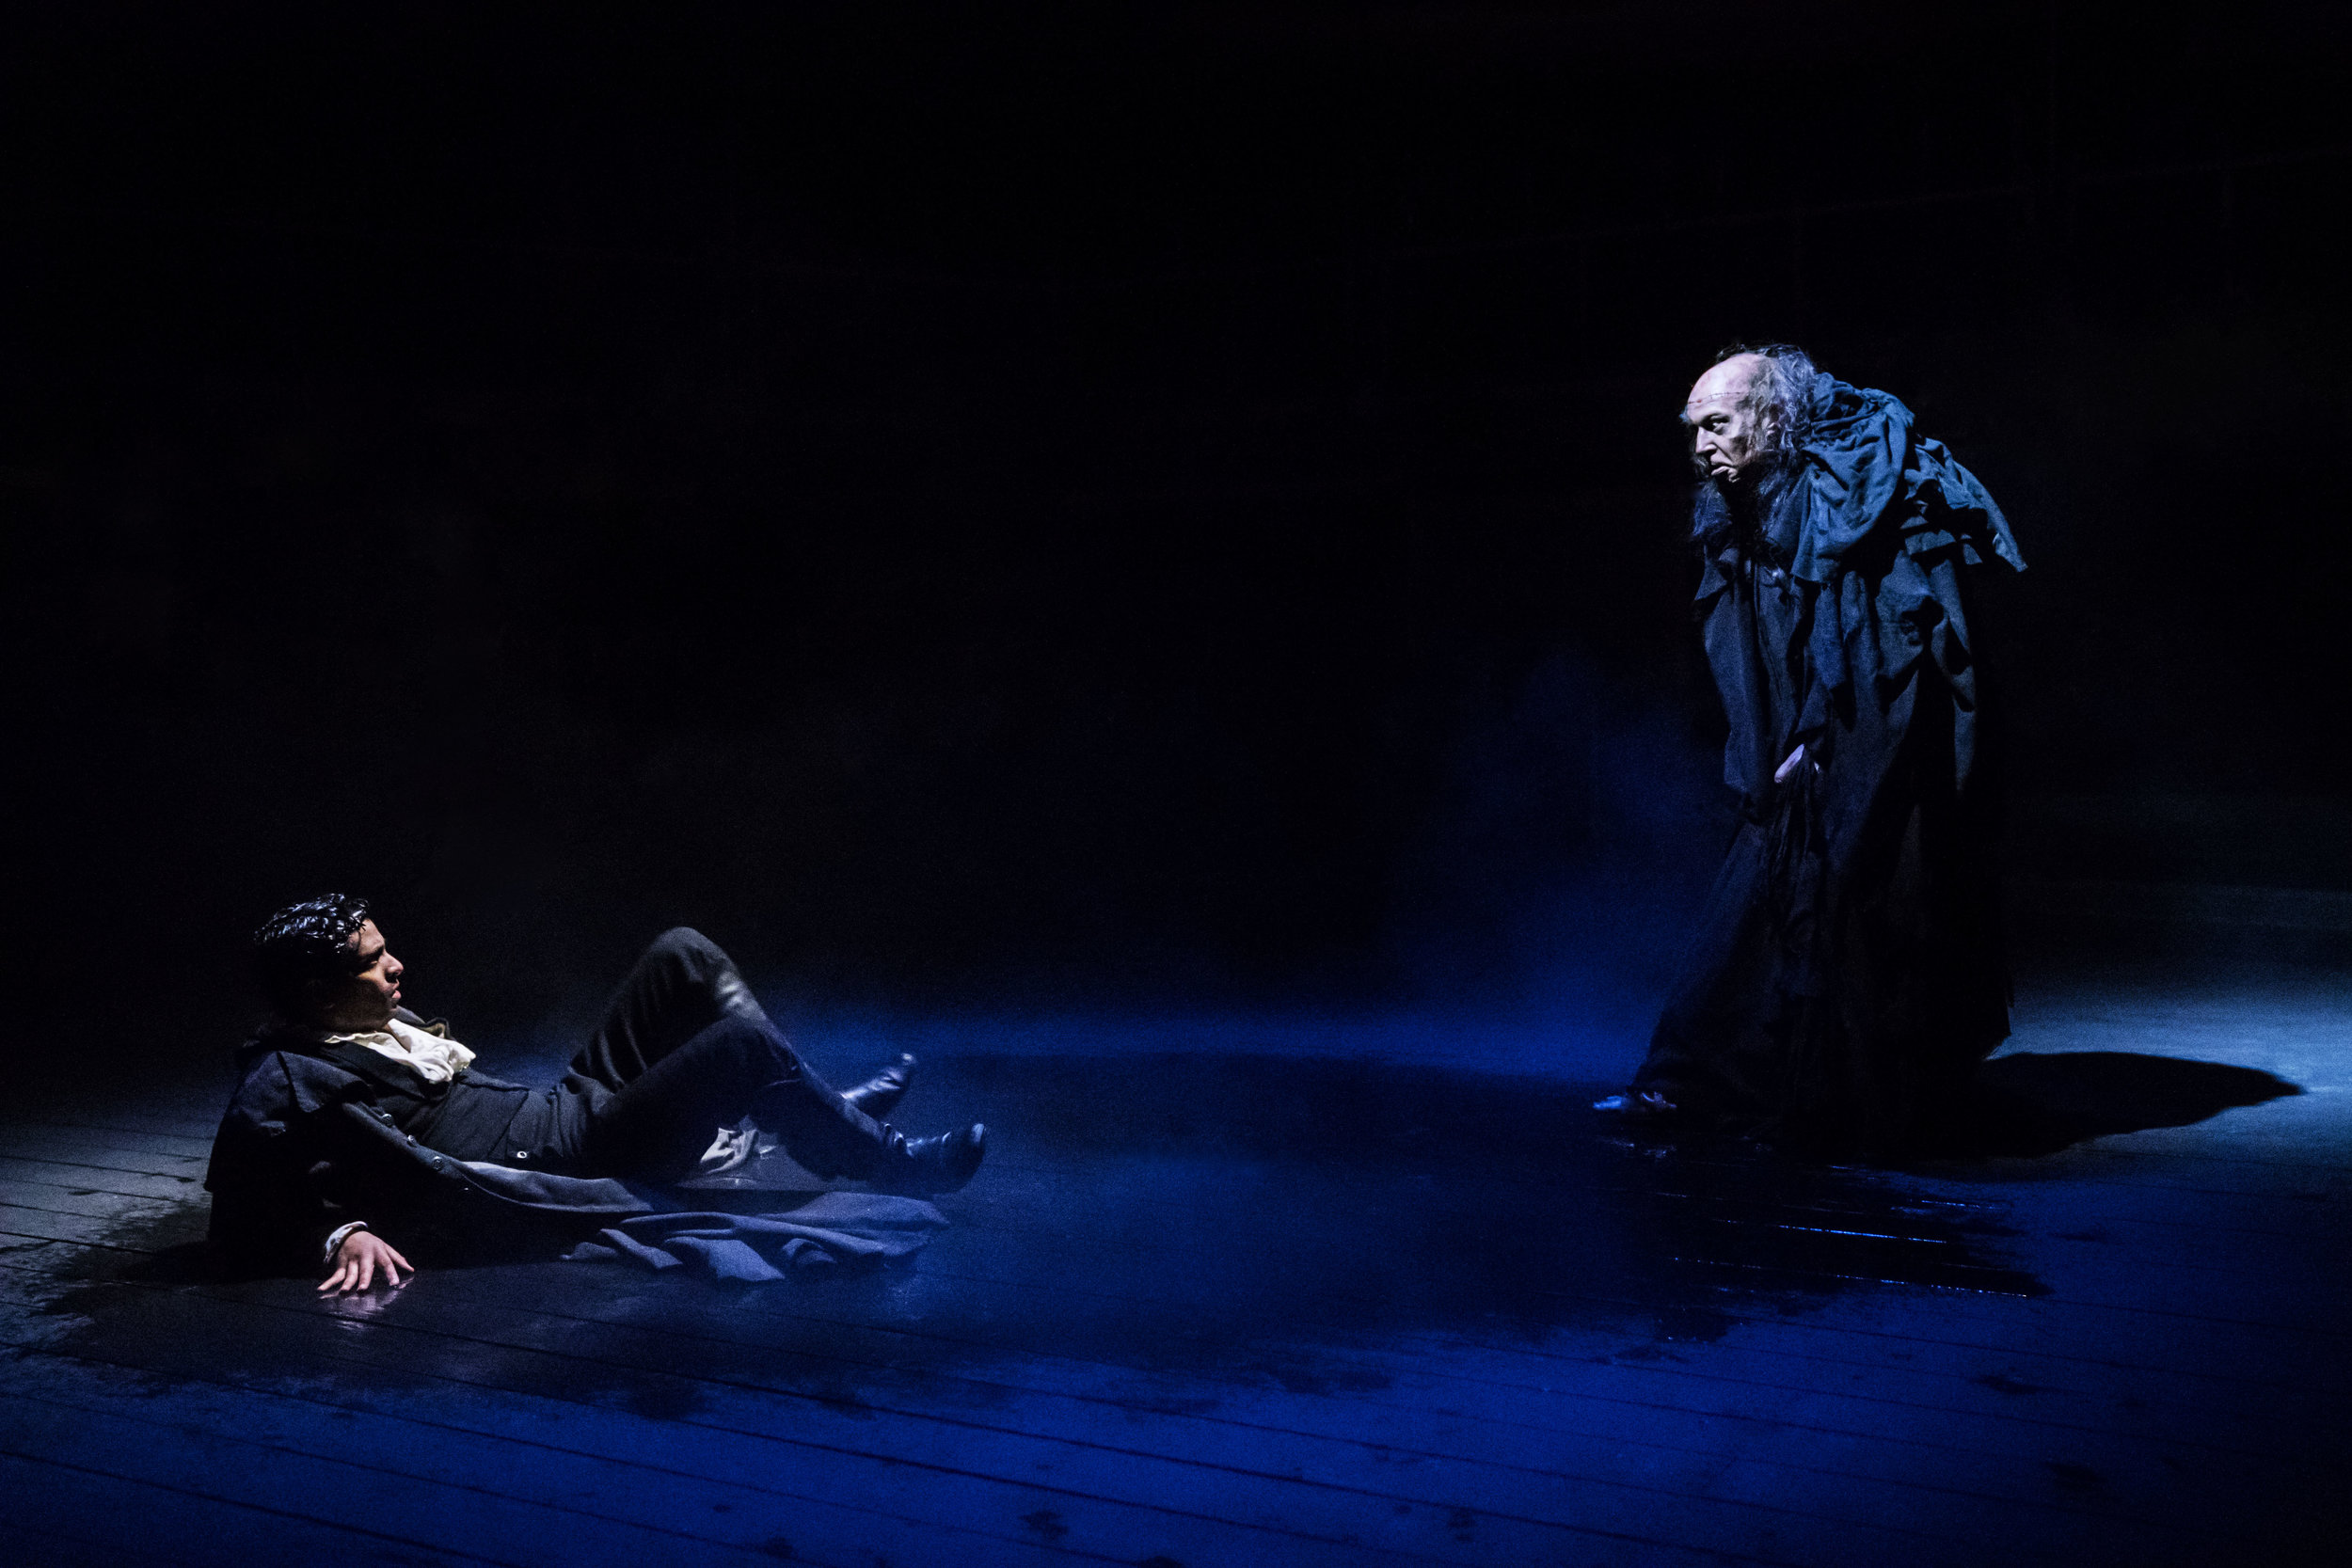 Victor Frankenstein ( Shane Zaza ) and The Creature ( Harry Attwell )in   FRANKENSTEIN  as adapted by  April De Angelis  and performed at the   Royal Exchange Theatre   (9 Mar - 14 Apr 18) || Photo by  Johan Persson  - courtesy of  the Royal Exchange Theatre